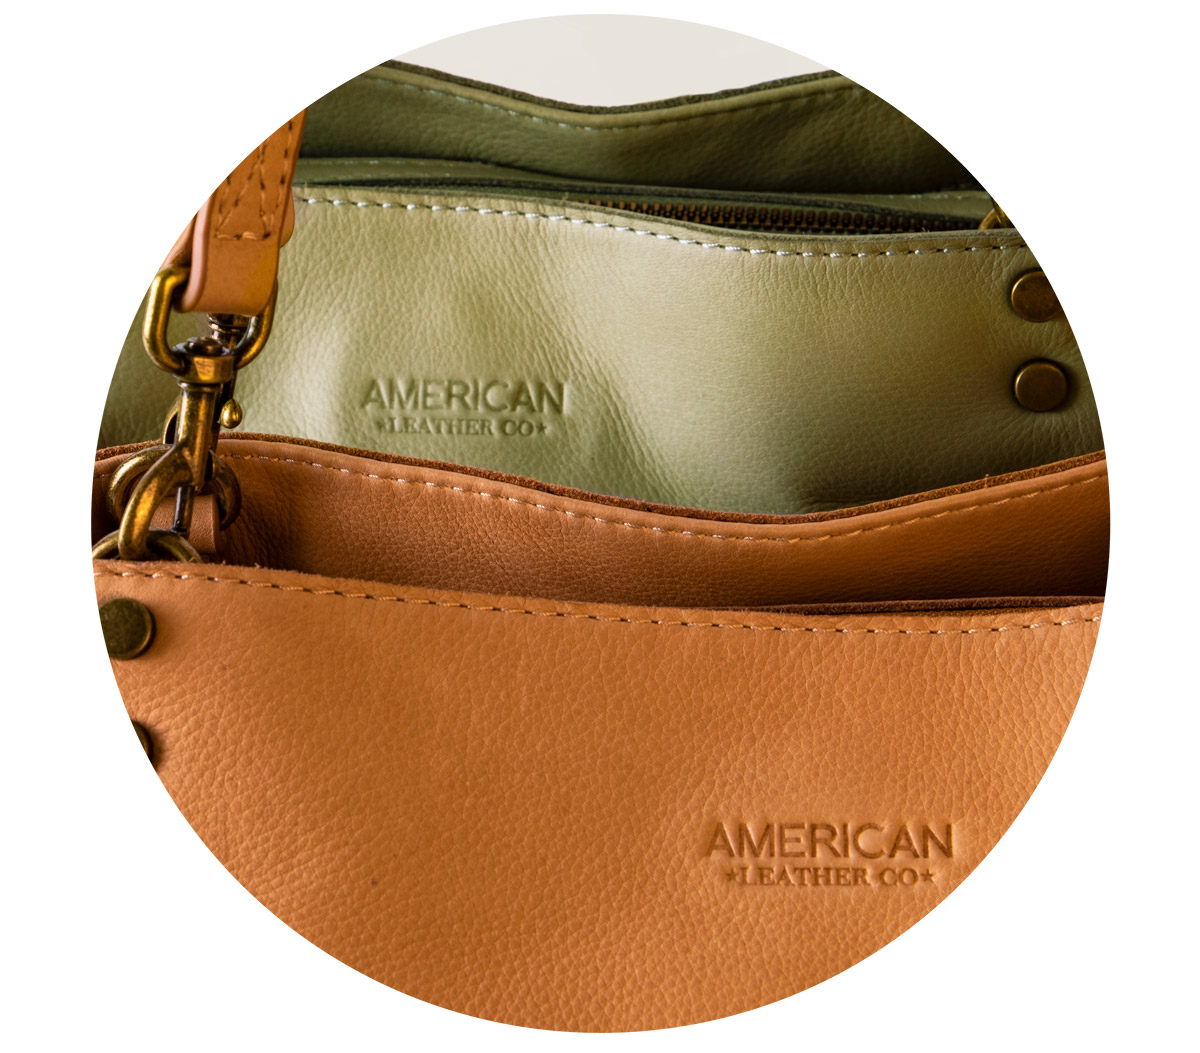 d5e1d0446 American Leather Co. | Home